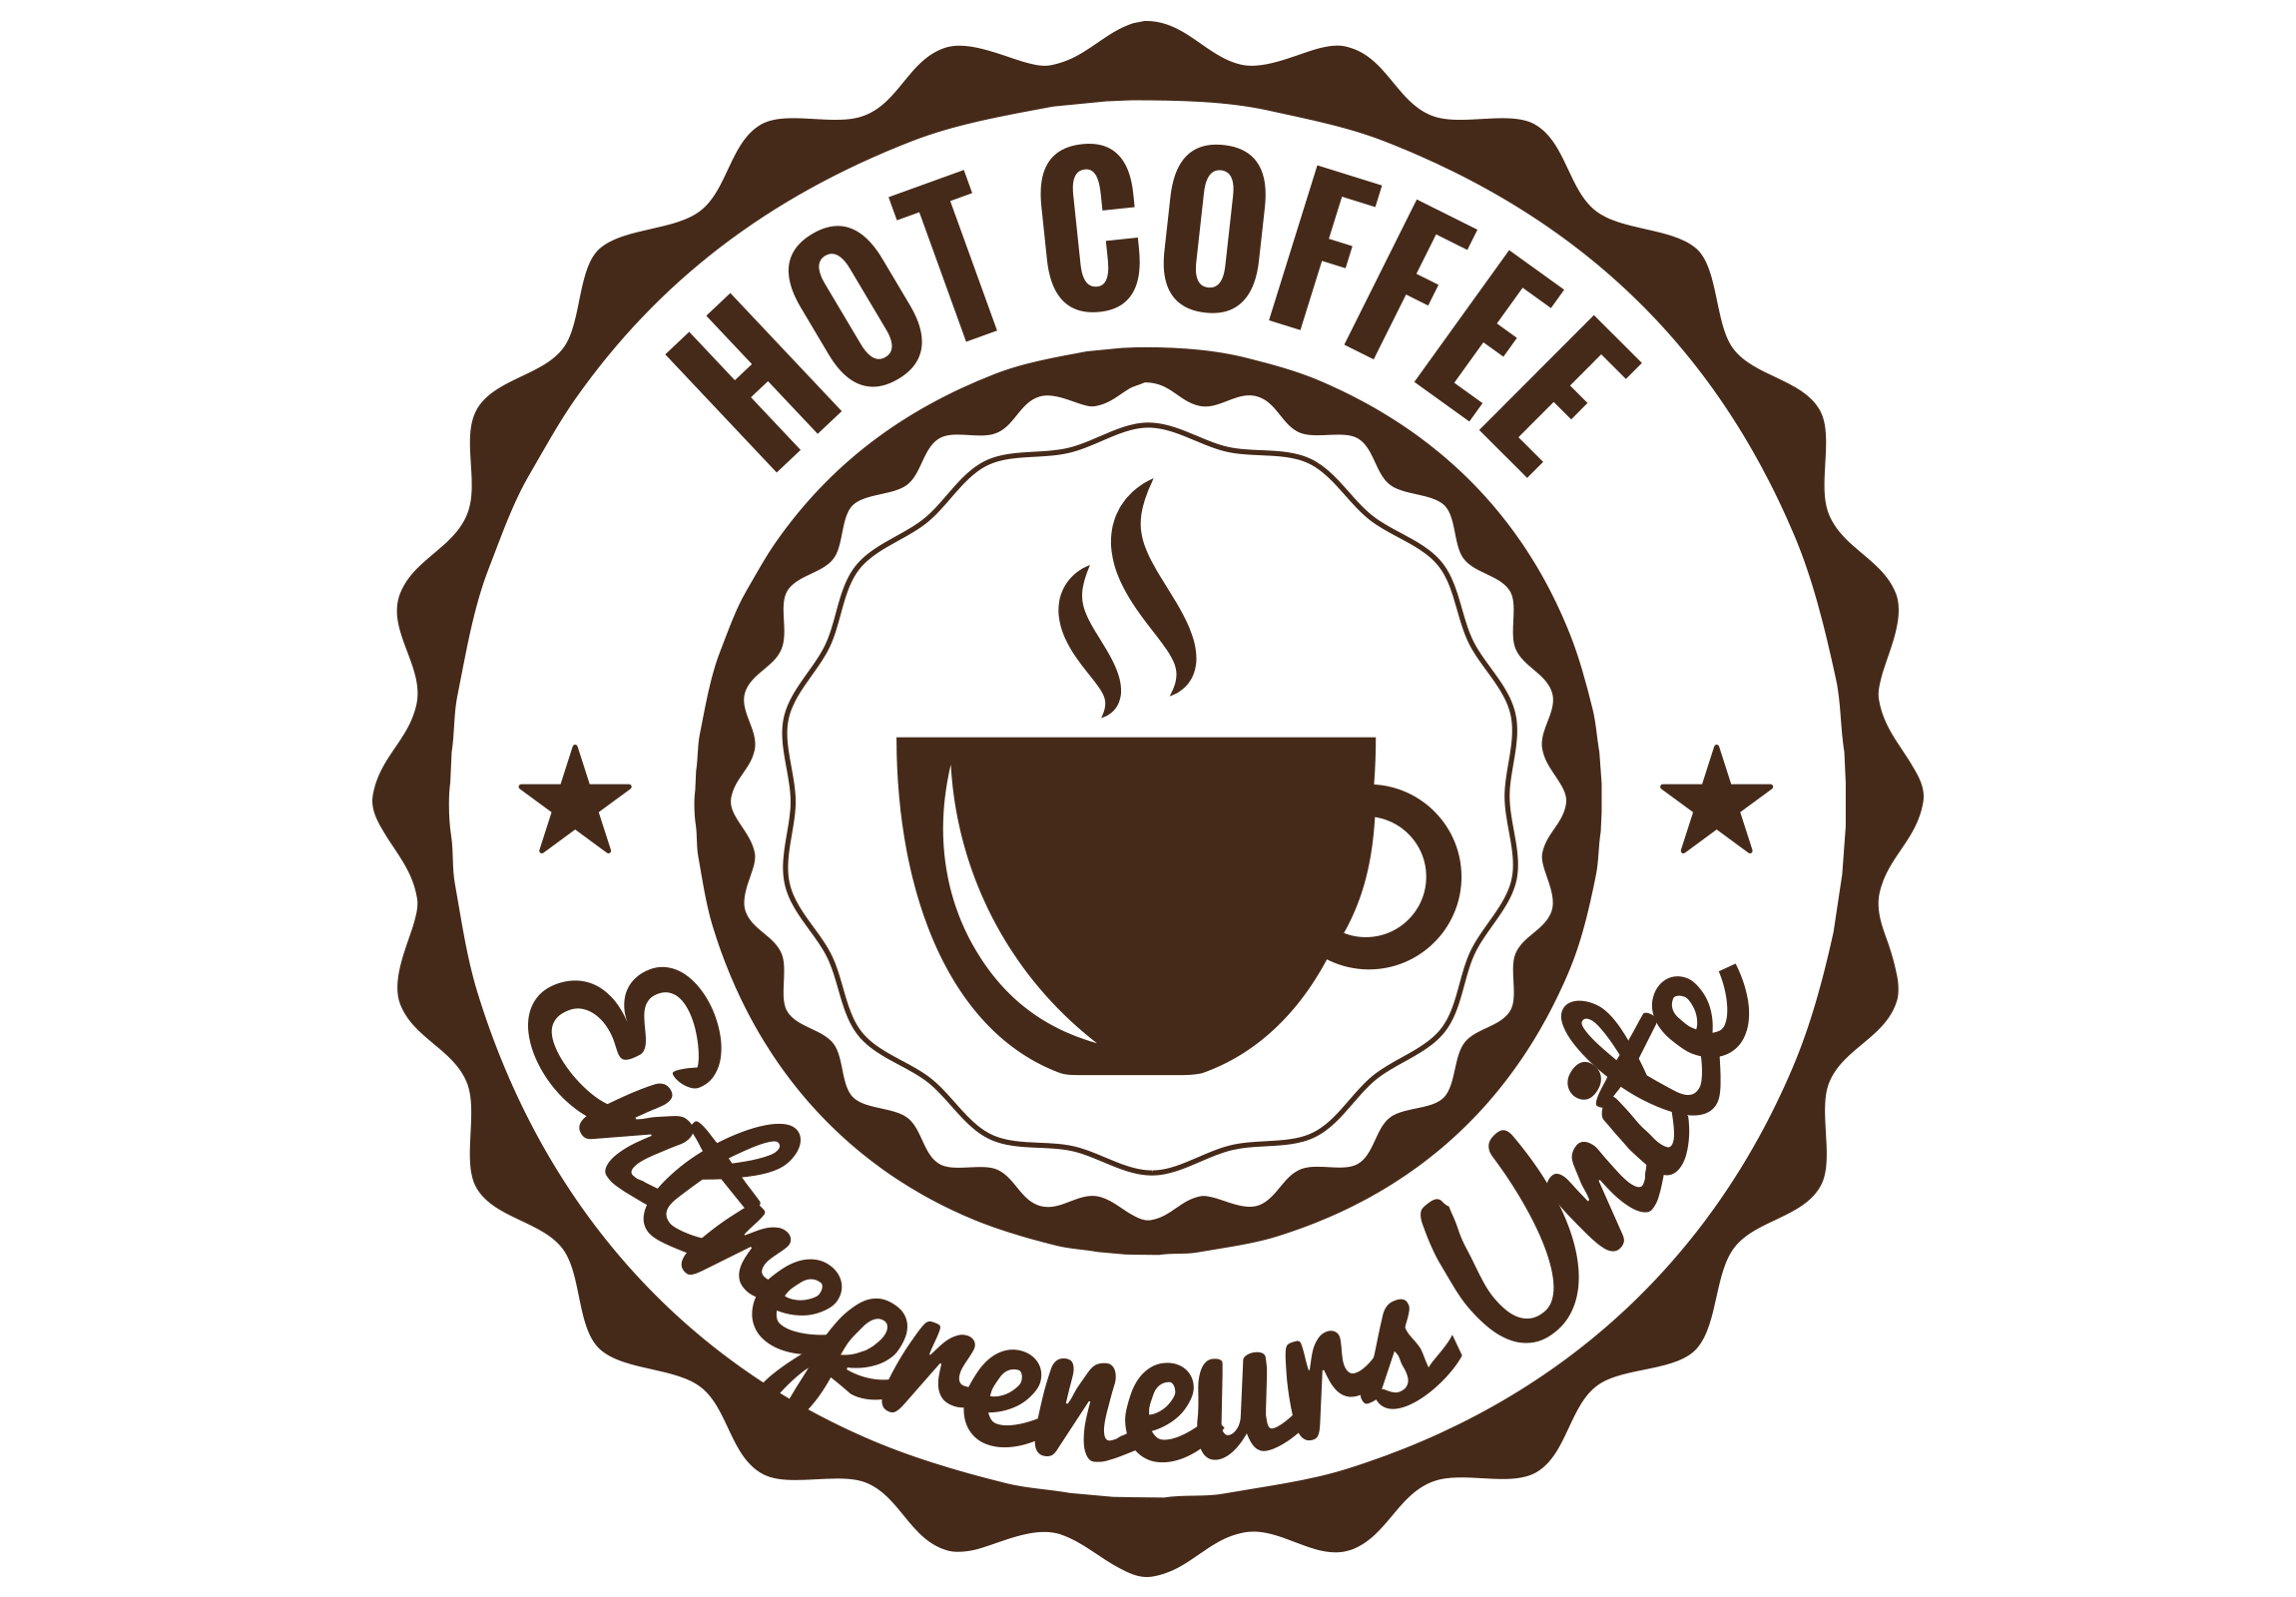 HOT COFFEE LOGO.png